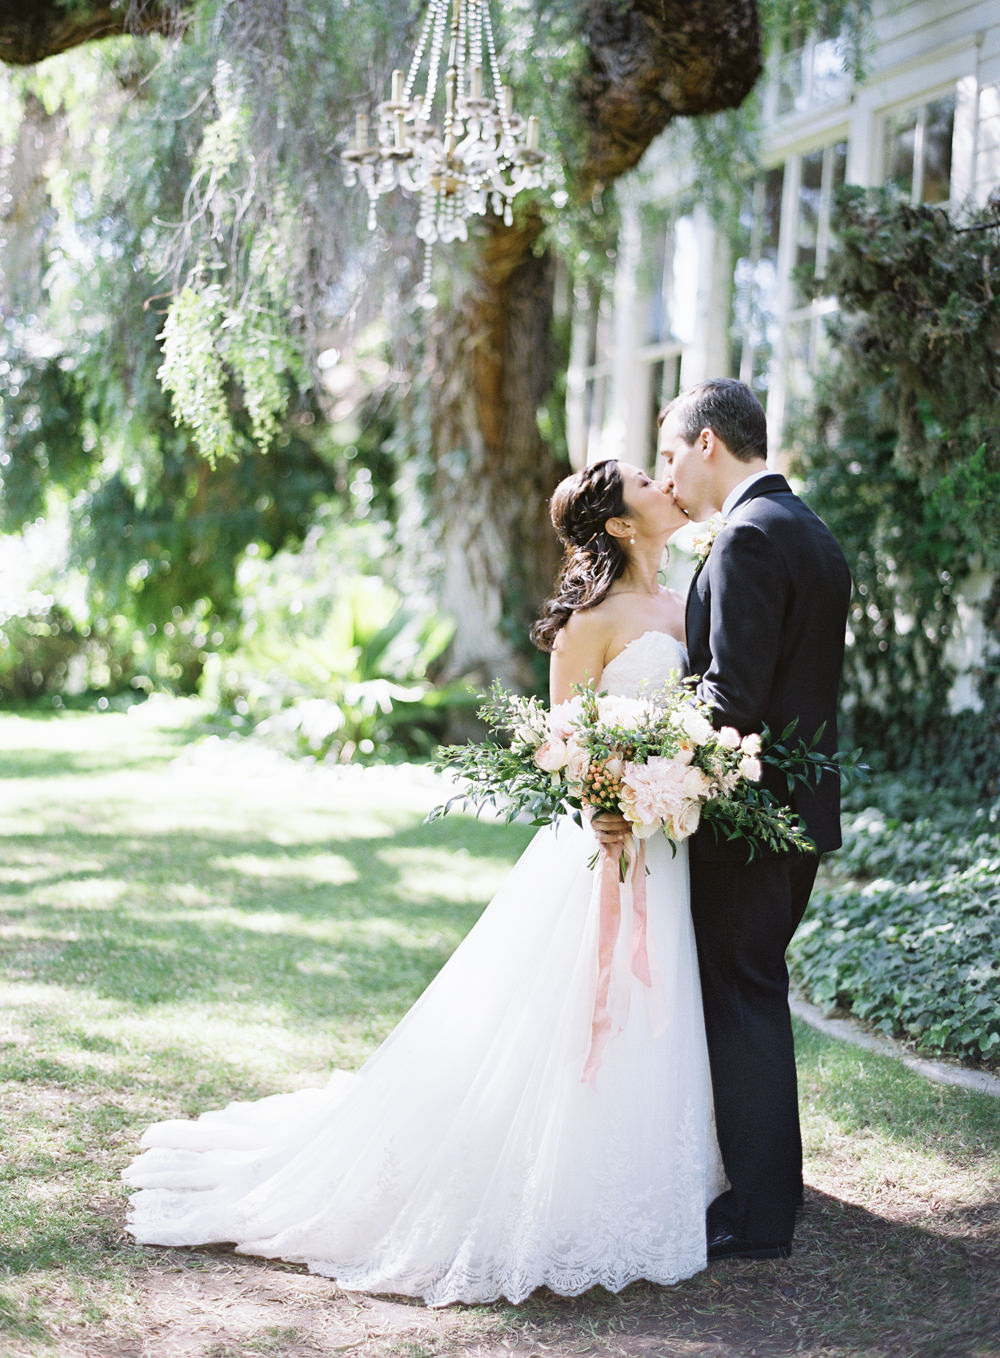 Romantic Garden Wedding in California | Style Me Pretty | Green Gables Estate | Classic Romantic blush pink bridal bouquet | Bride and groom | Southern California Film photographer | Whiskers and Willow Photography